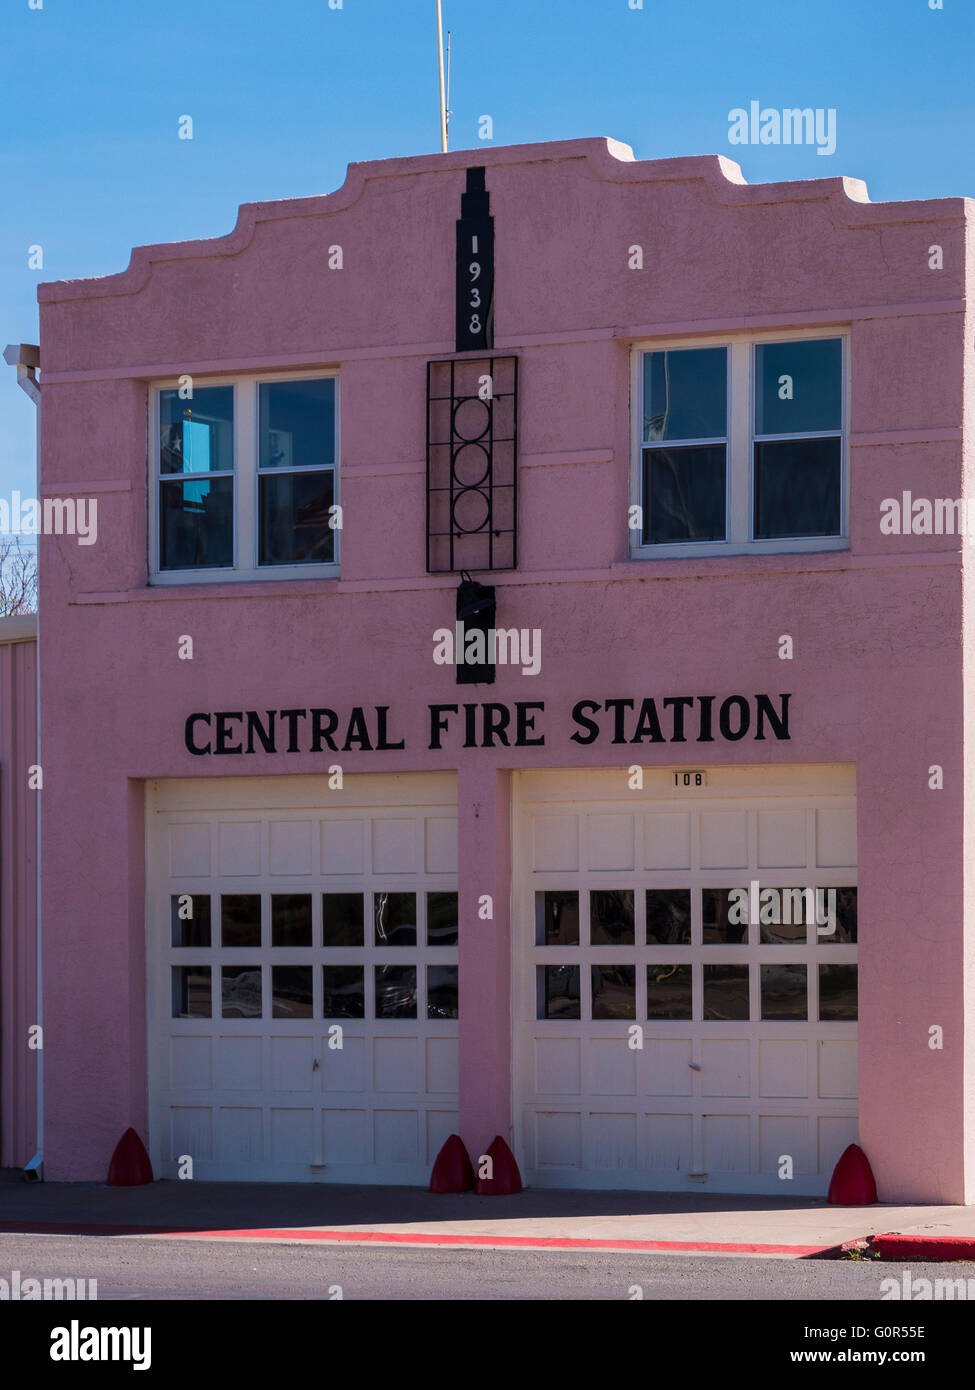 Central Fire Station, Marfa, Texas. - Stock Image